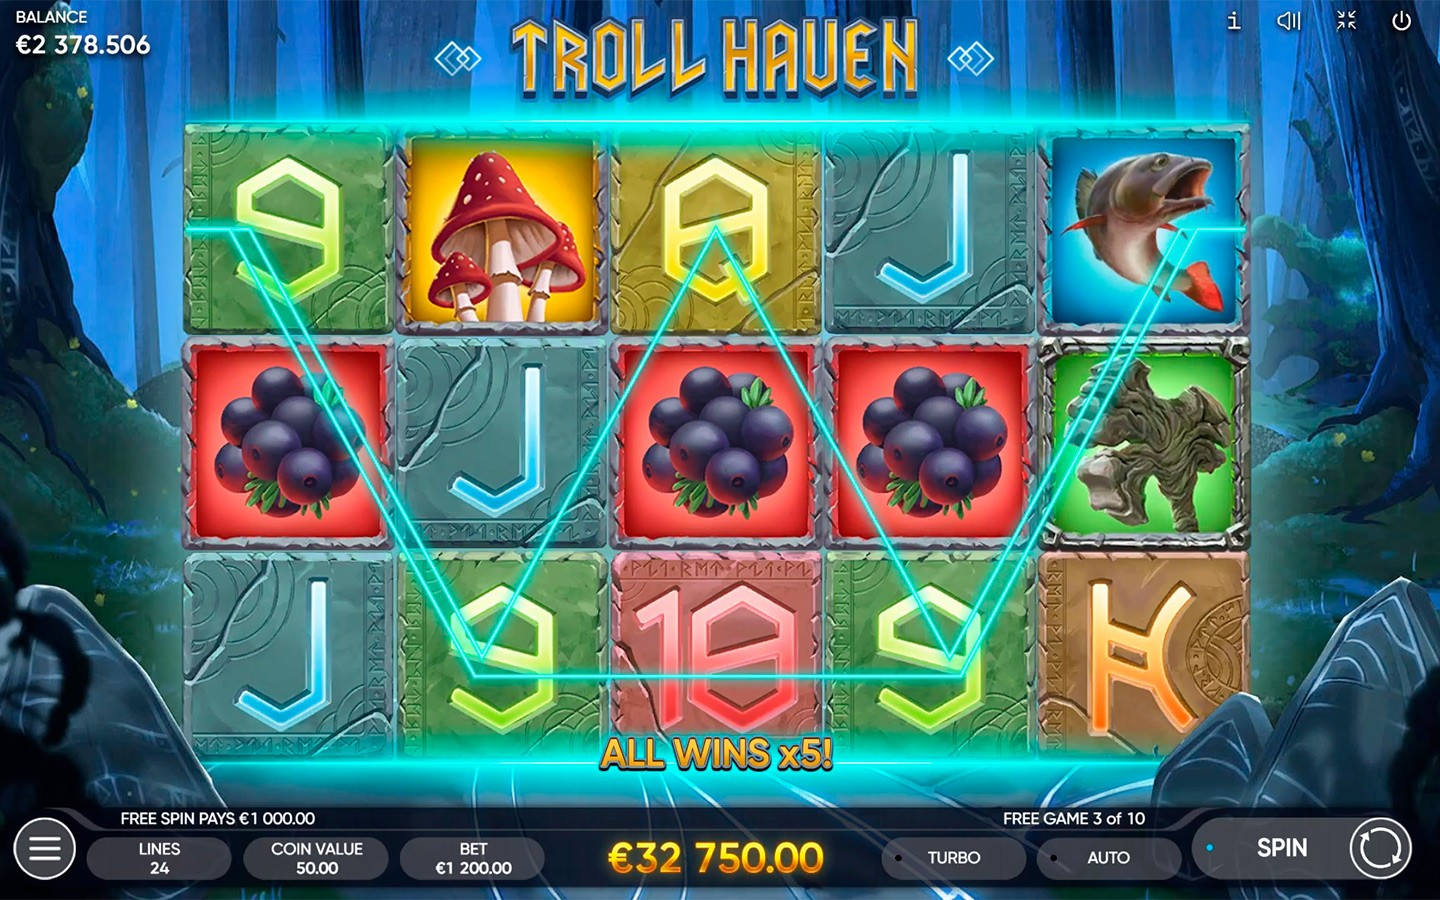 BEST NORDIC GAMES 2020 | Play Troll Haven slot now!